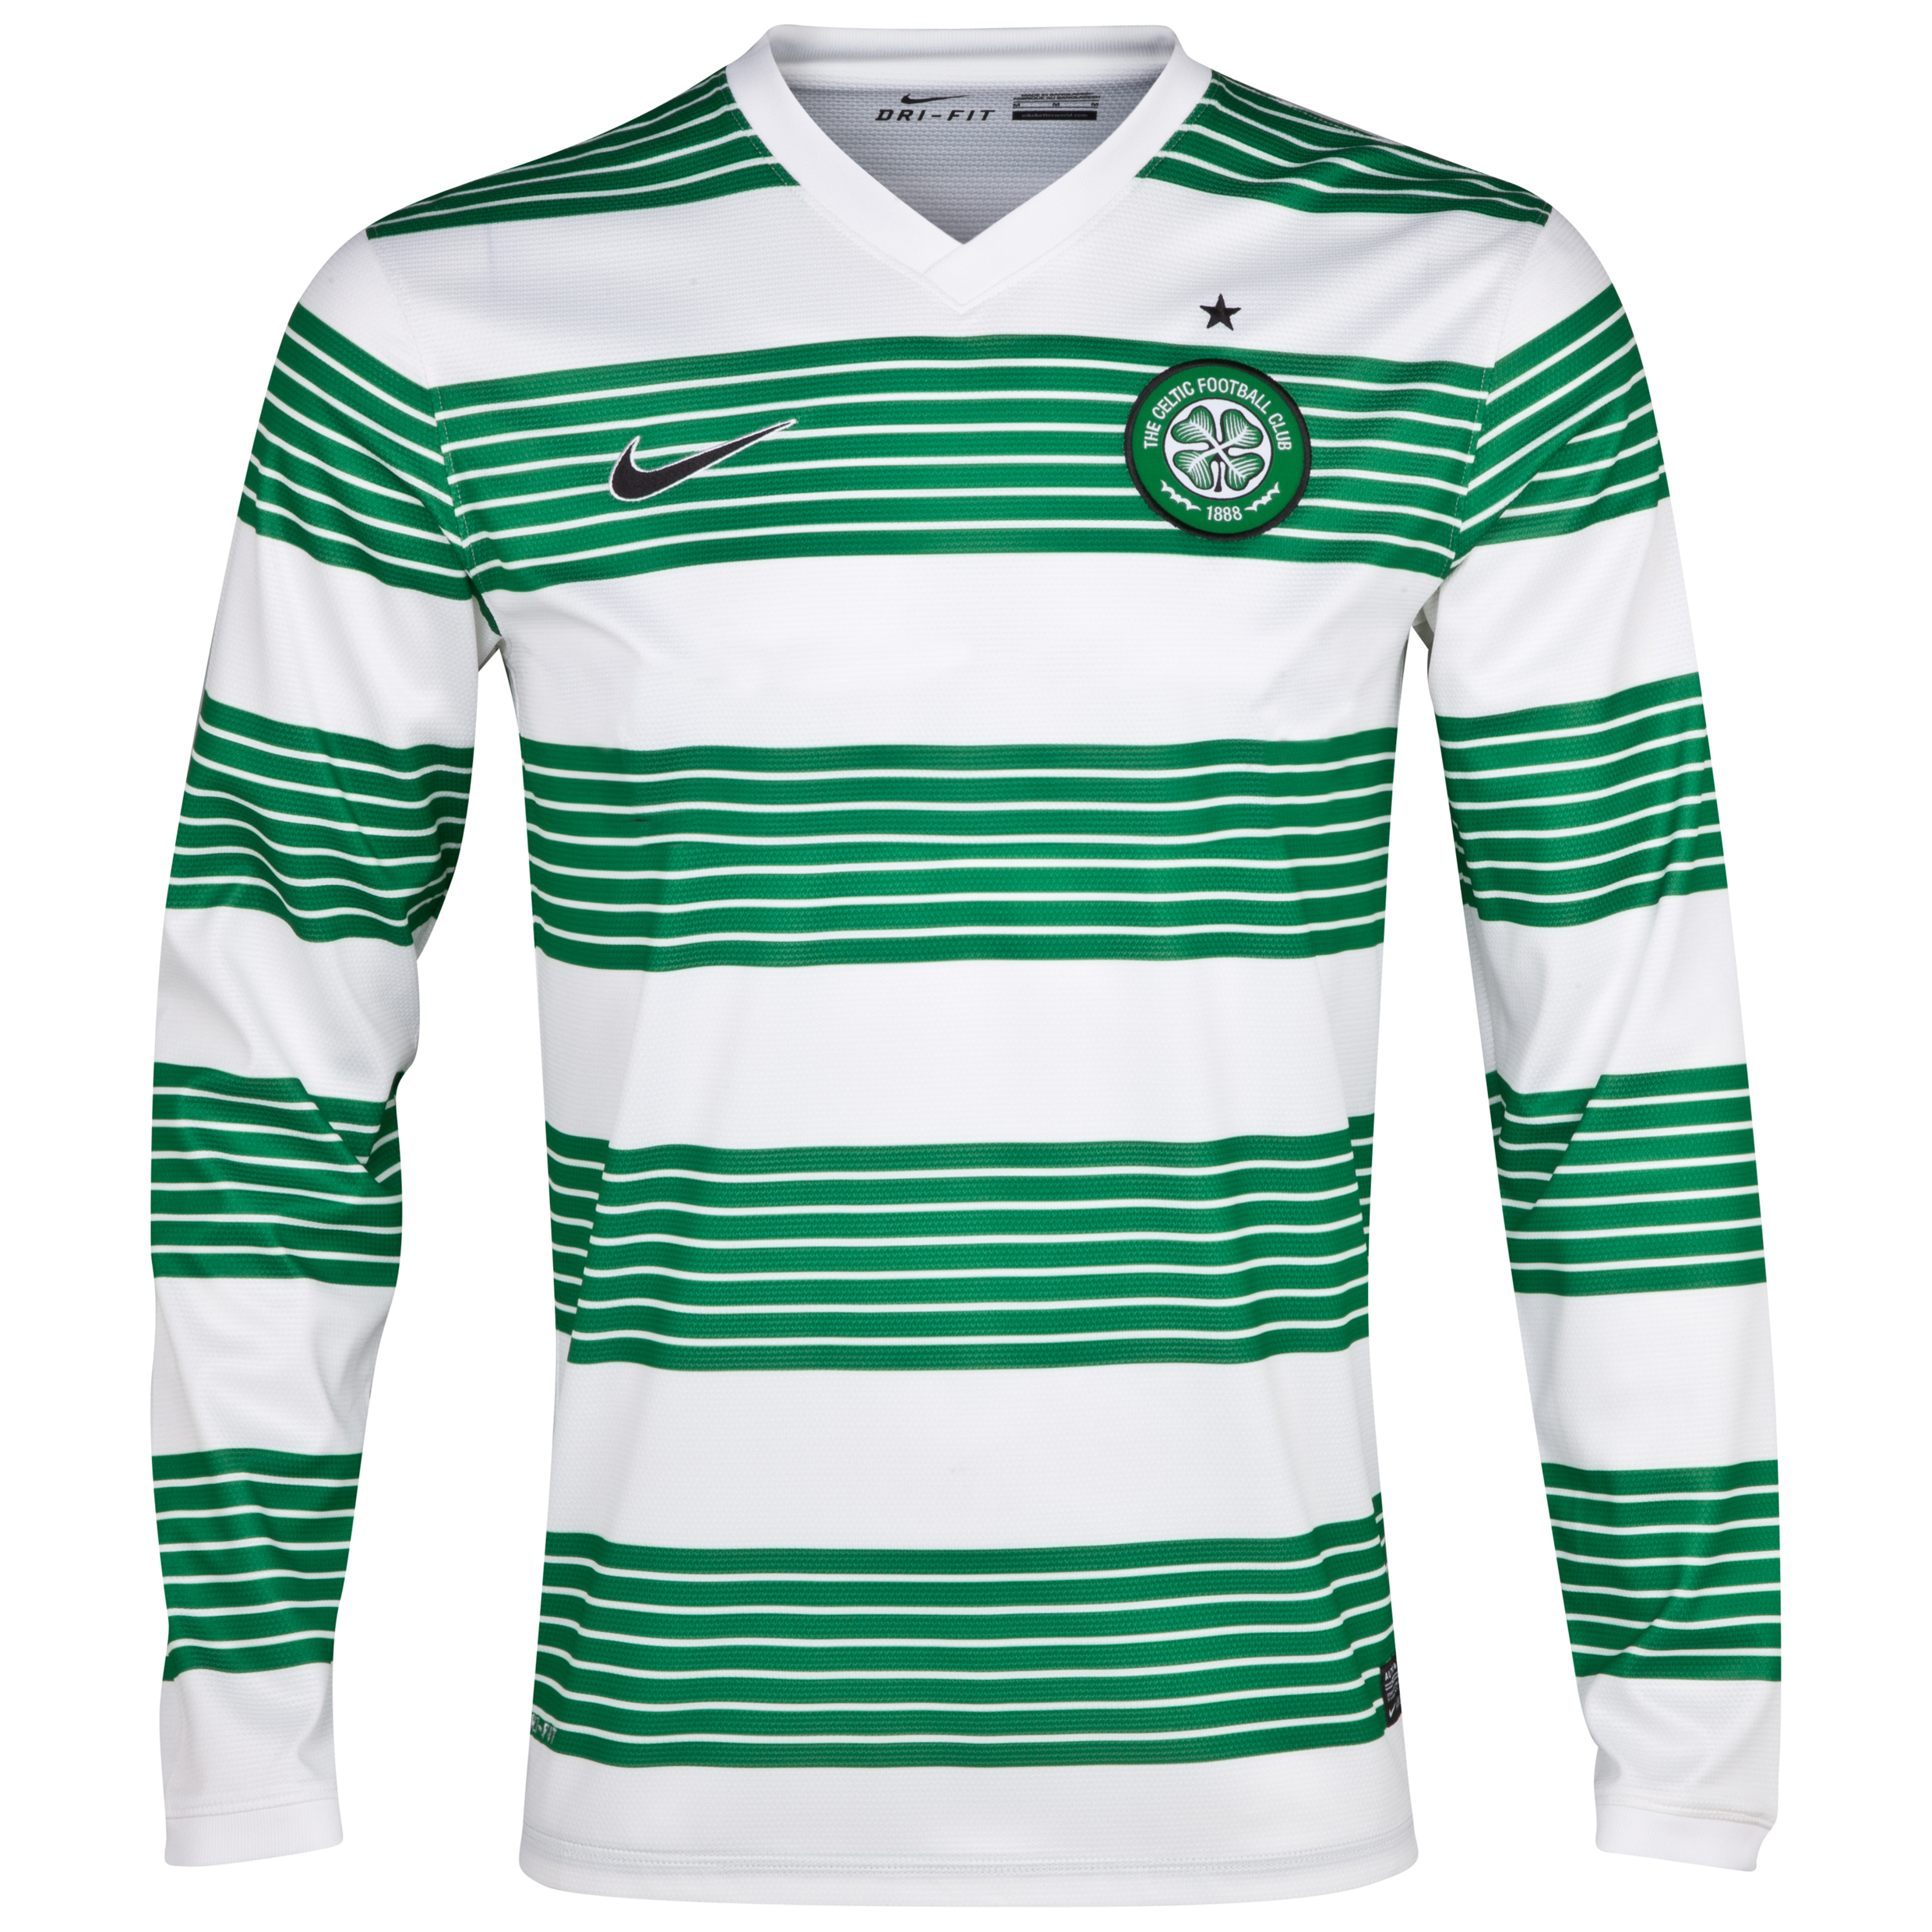 Celtic Home Shirt 2013/15 - L/S- Unsponsored